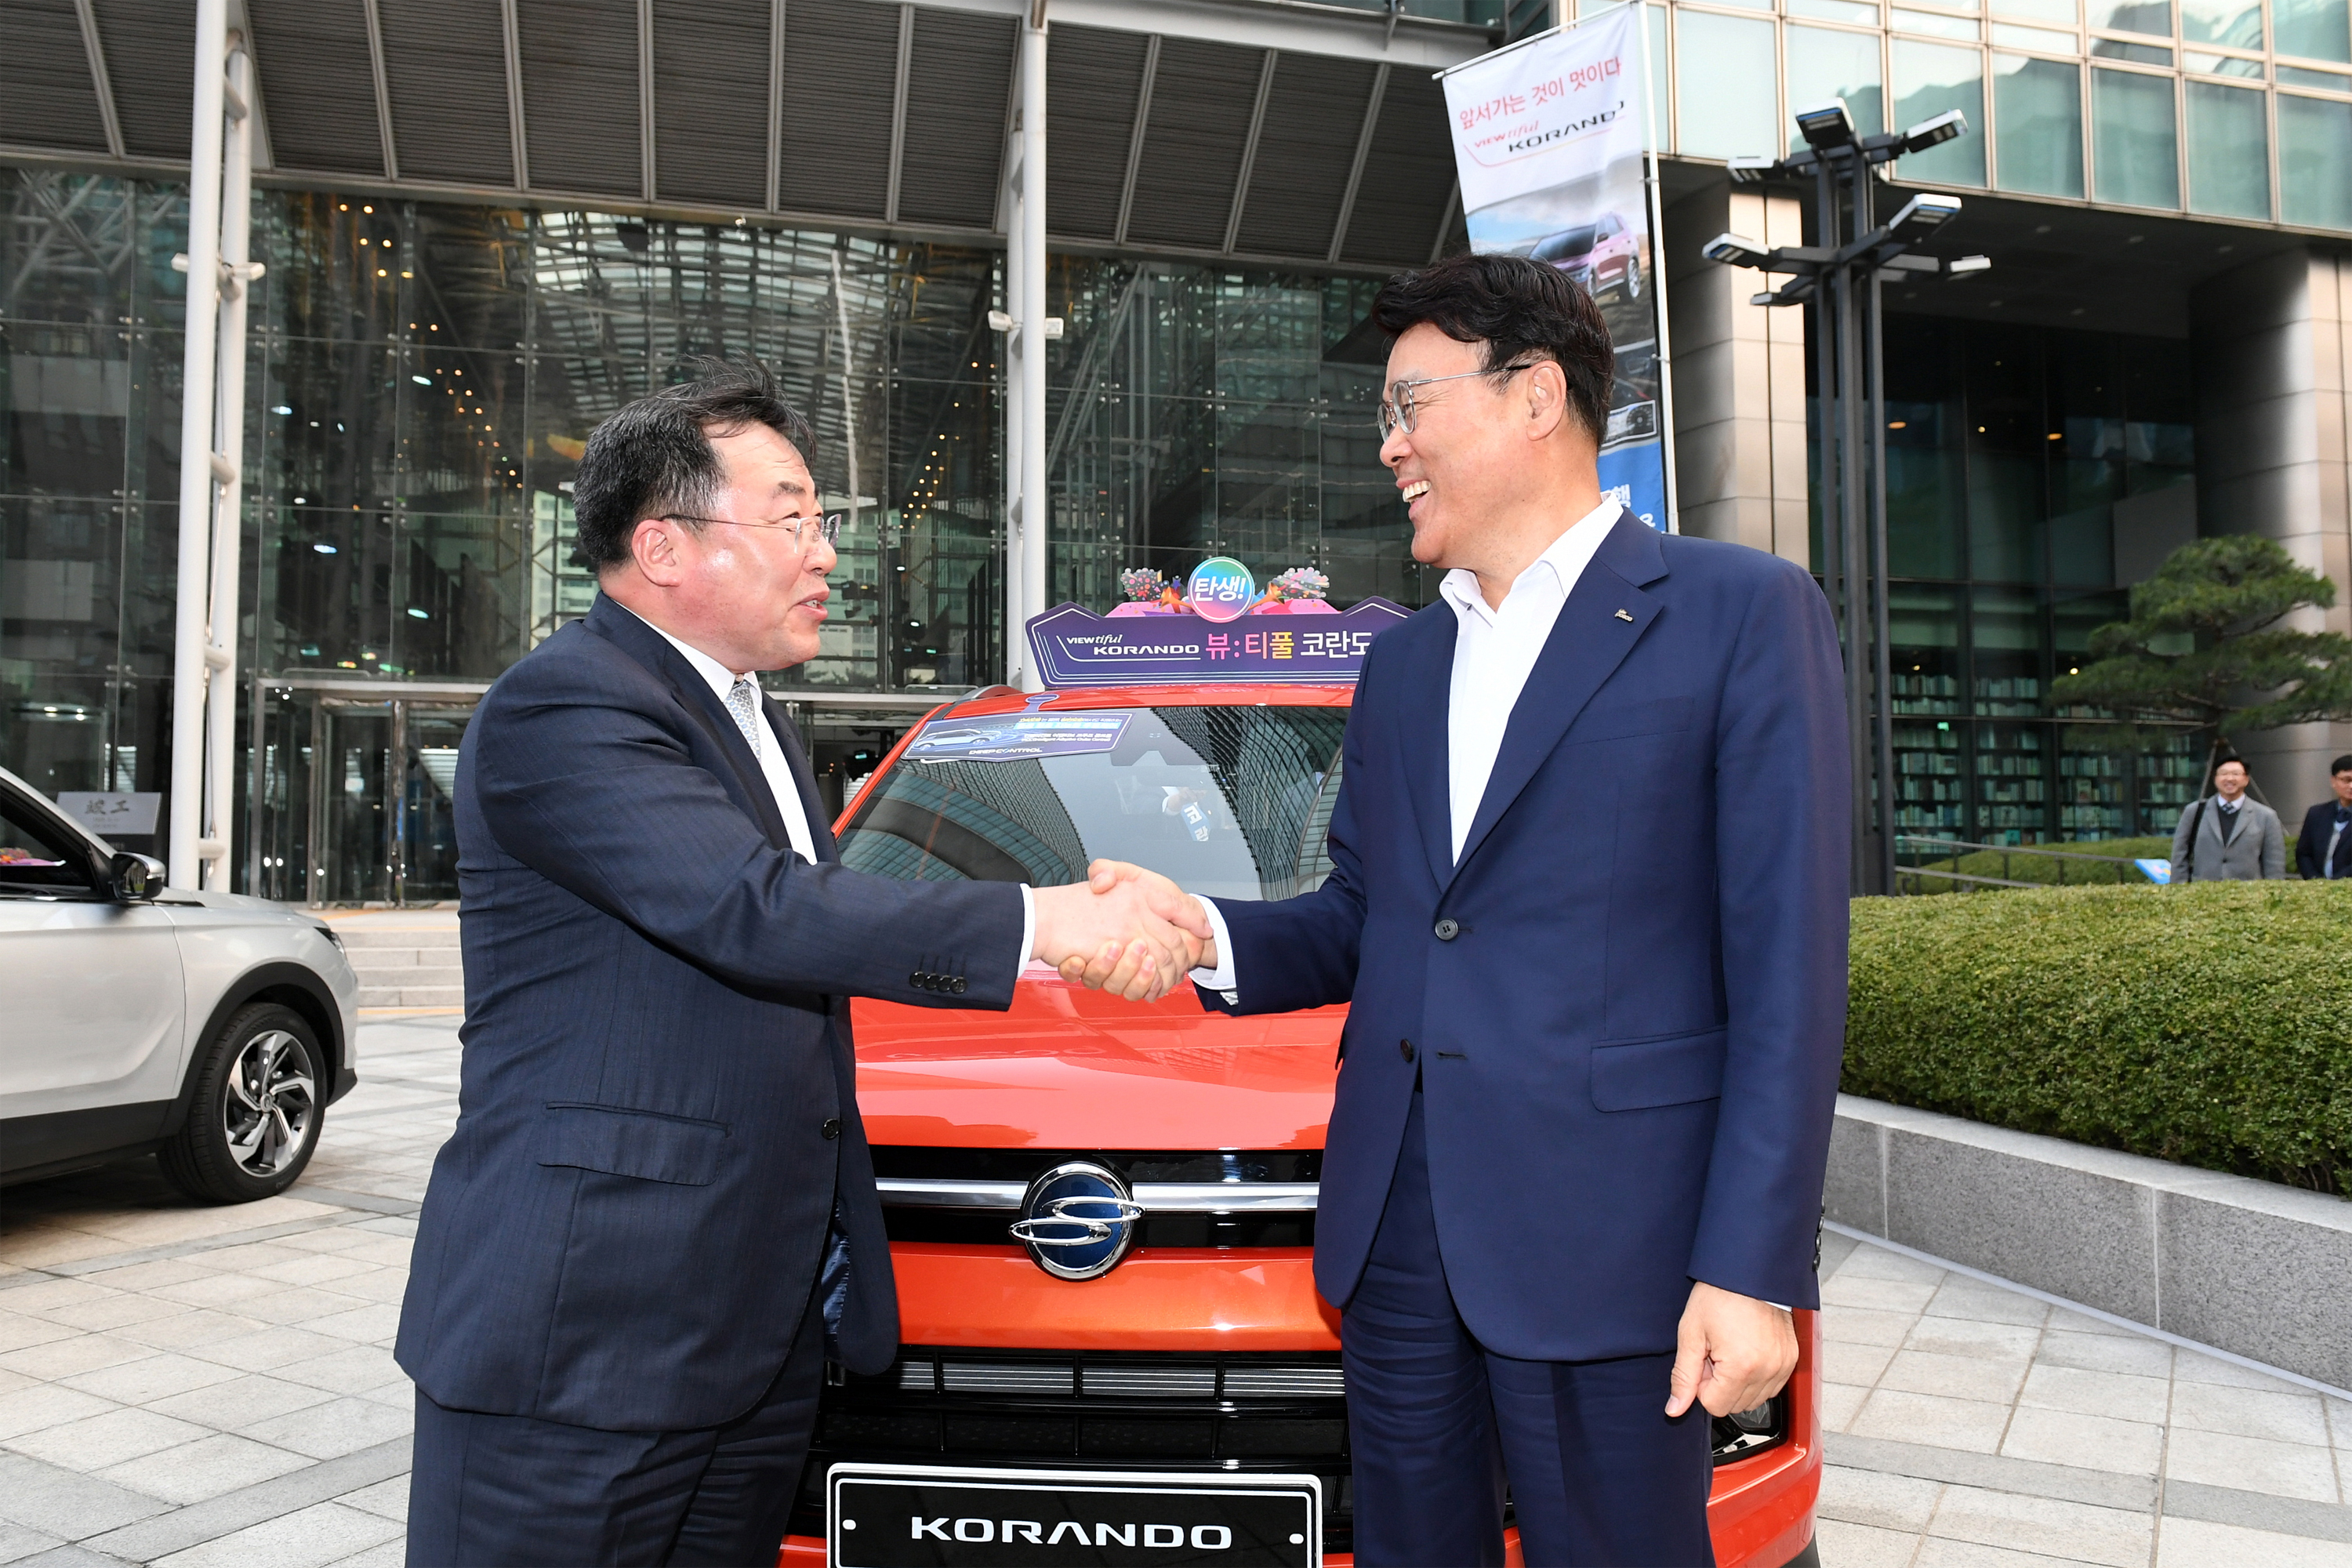 CEO Jeong-Woo Choi (right) shaking hands with the SsangYong Vice President Byung-Tae Yea (left)